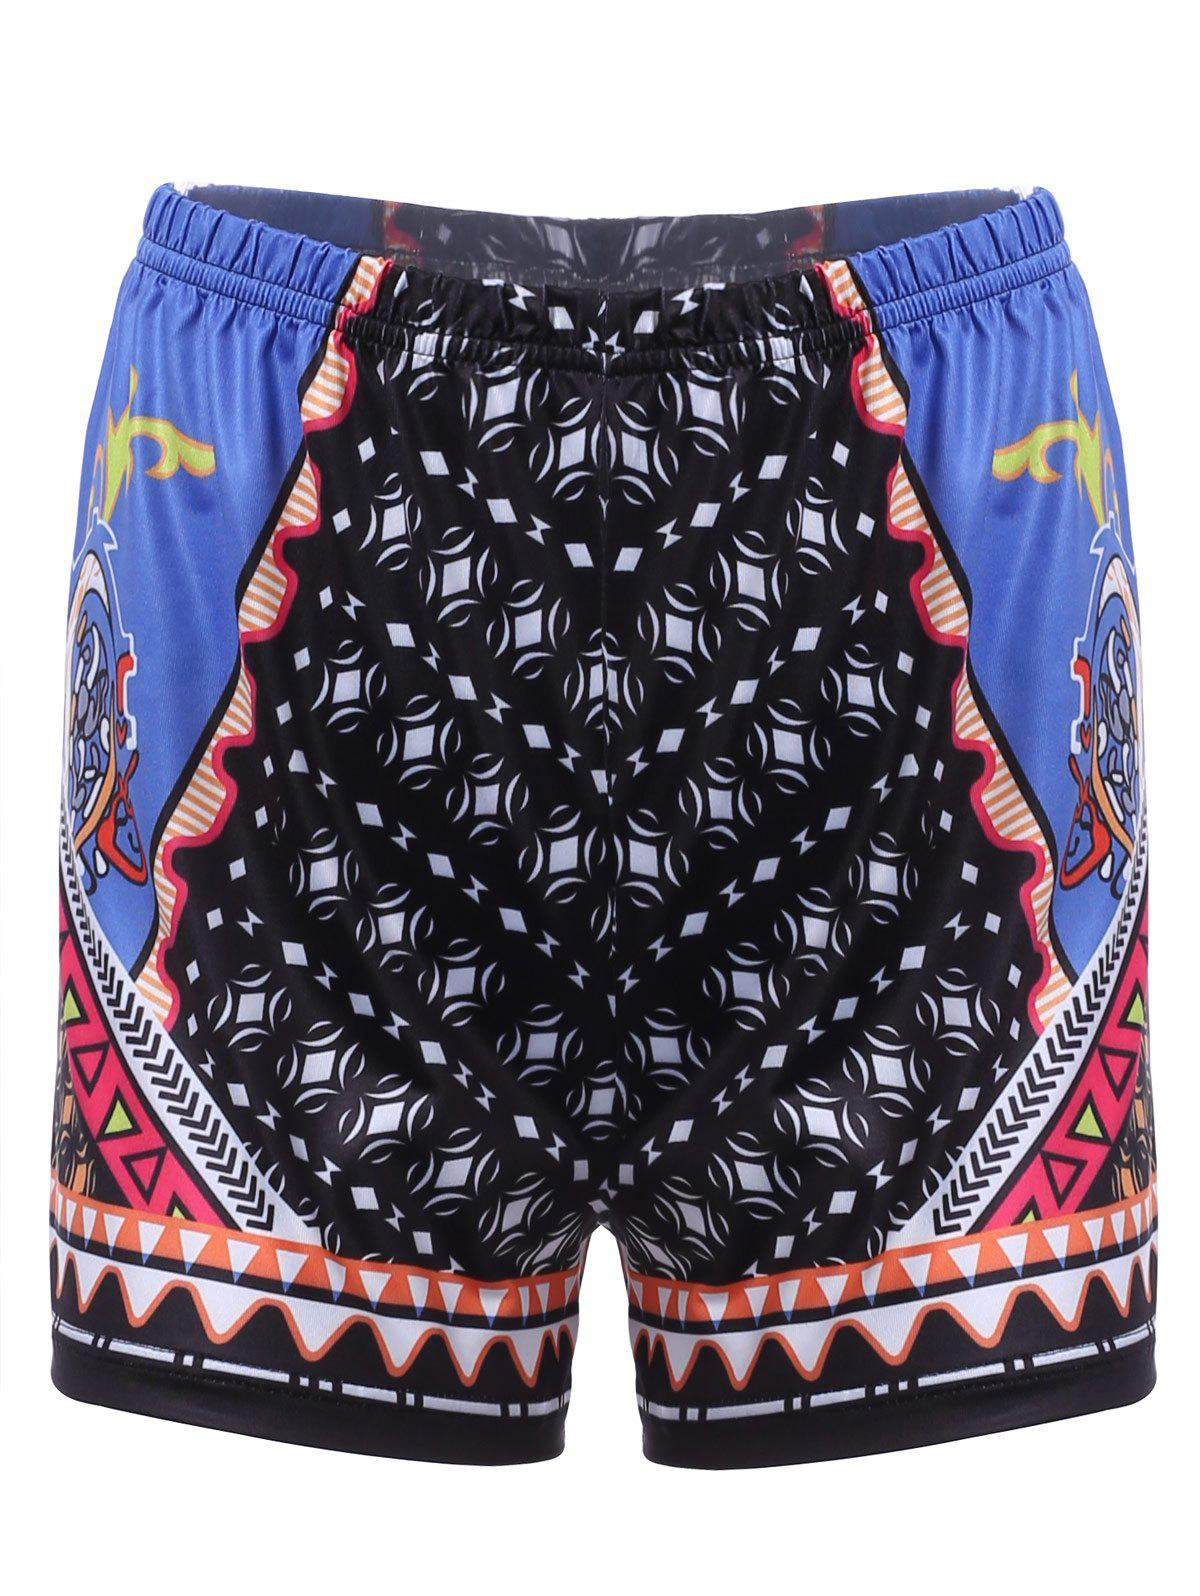 Chic Geometrical Print Beach Shorts For Women chic mult color trimmed beach shorts